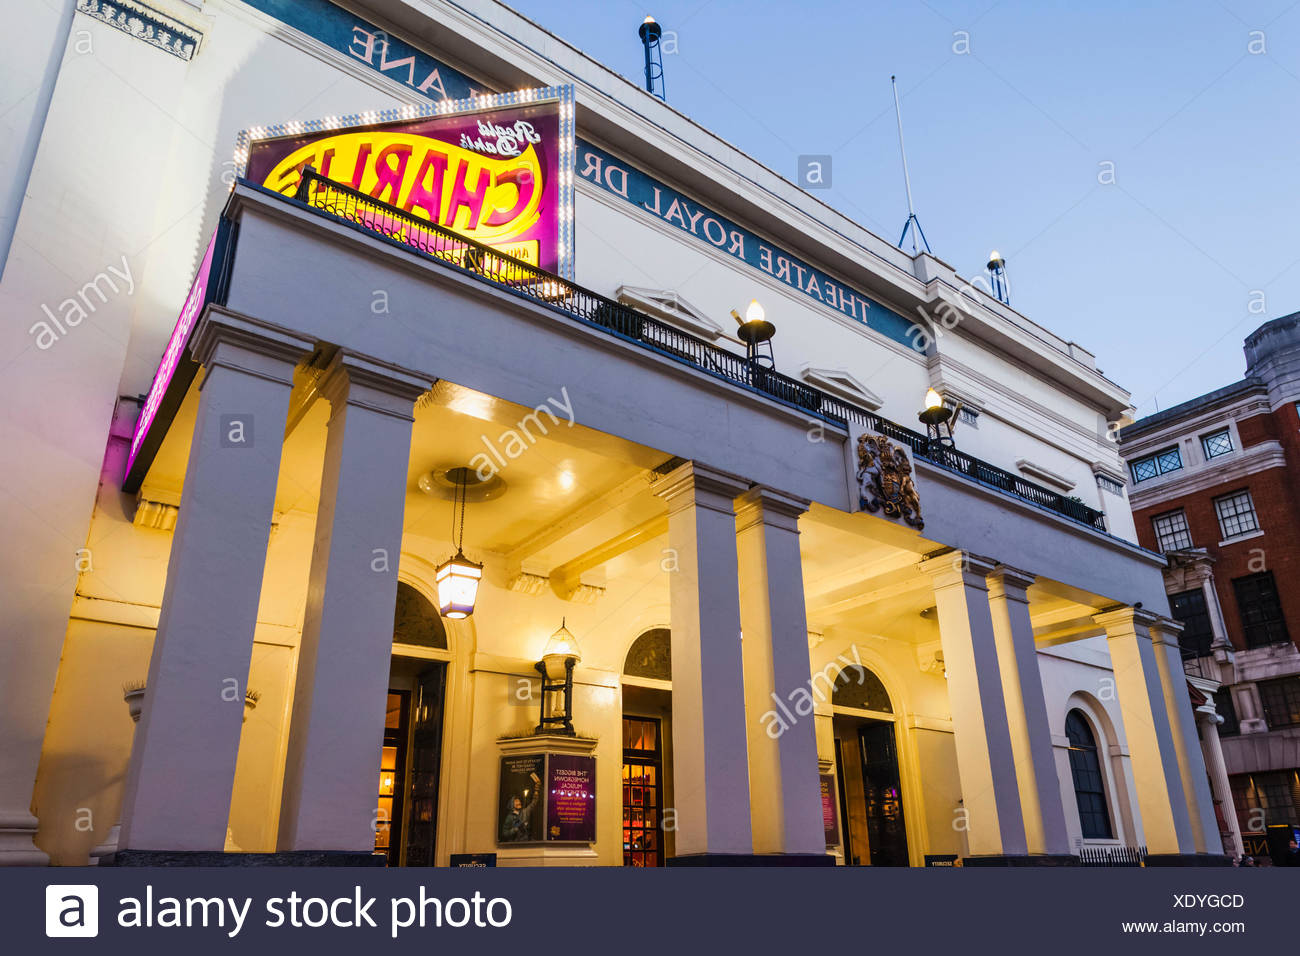 England, London, The West End, Theatre Royal Drury Lane - Stock Image